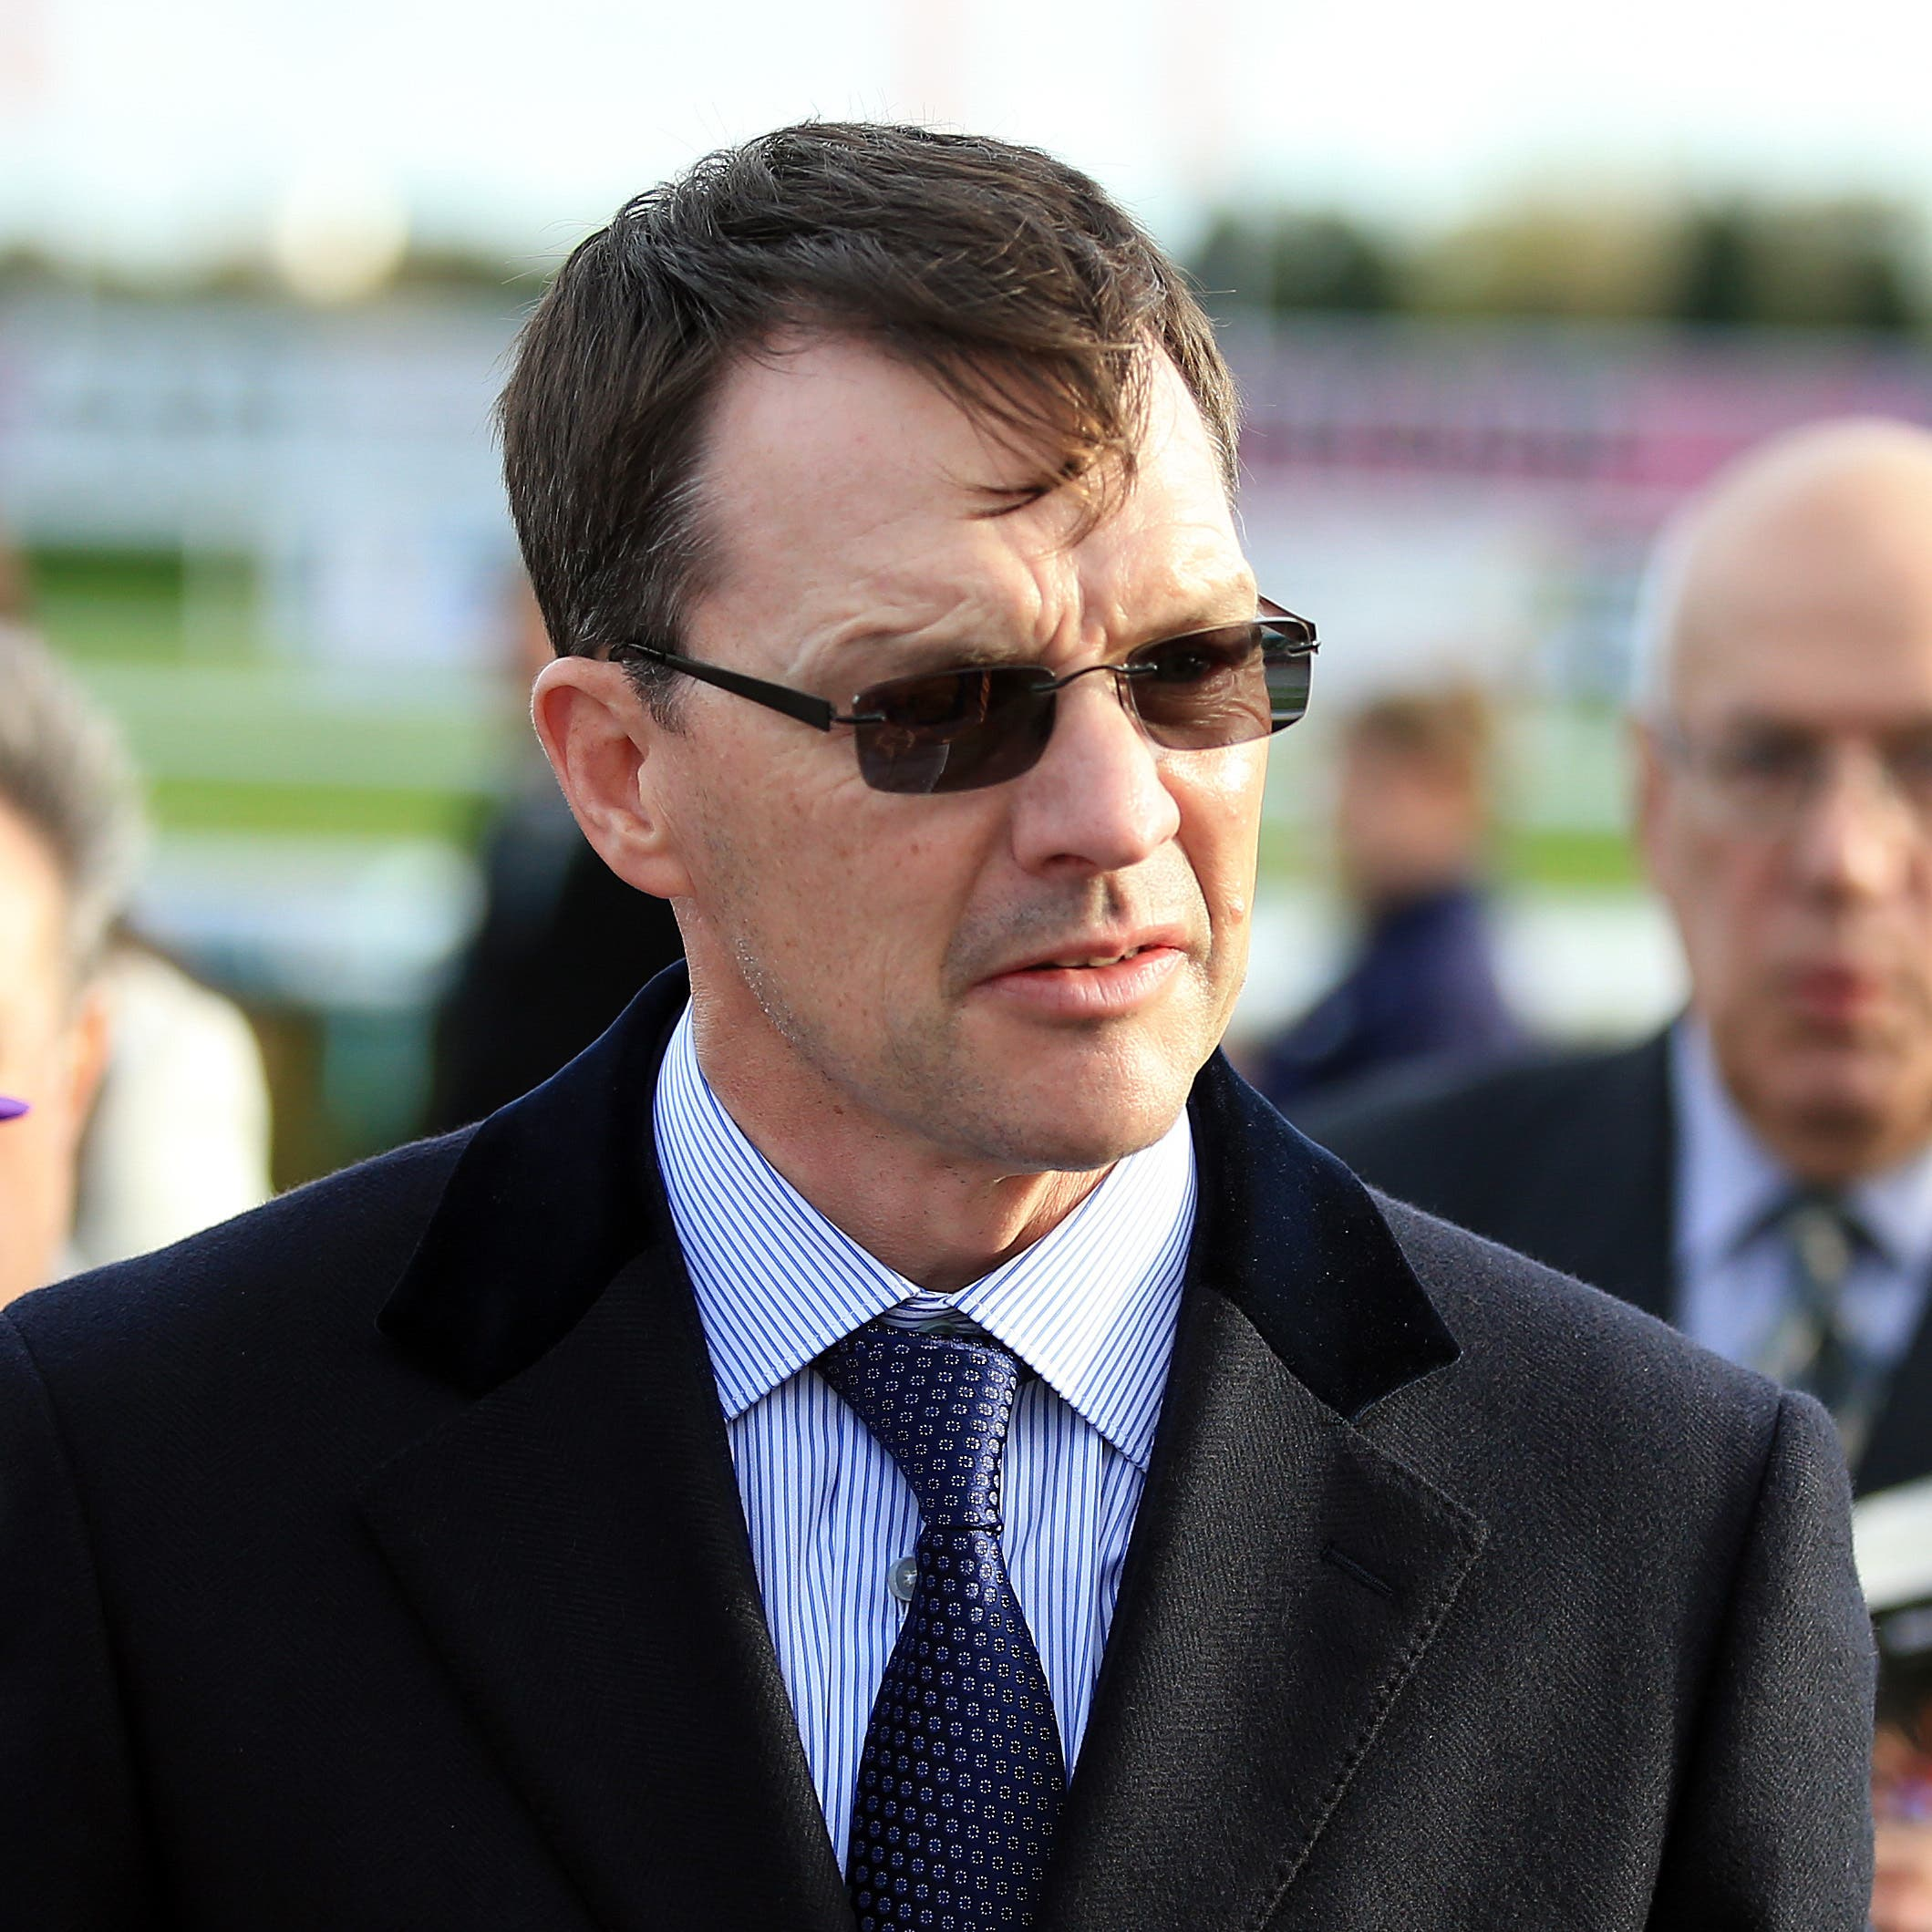 Aidan O'Brien, trainer (Clint Hughes/PA)